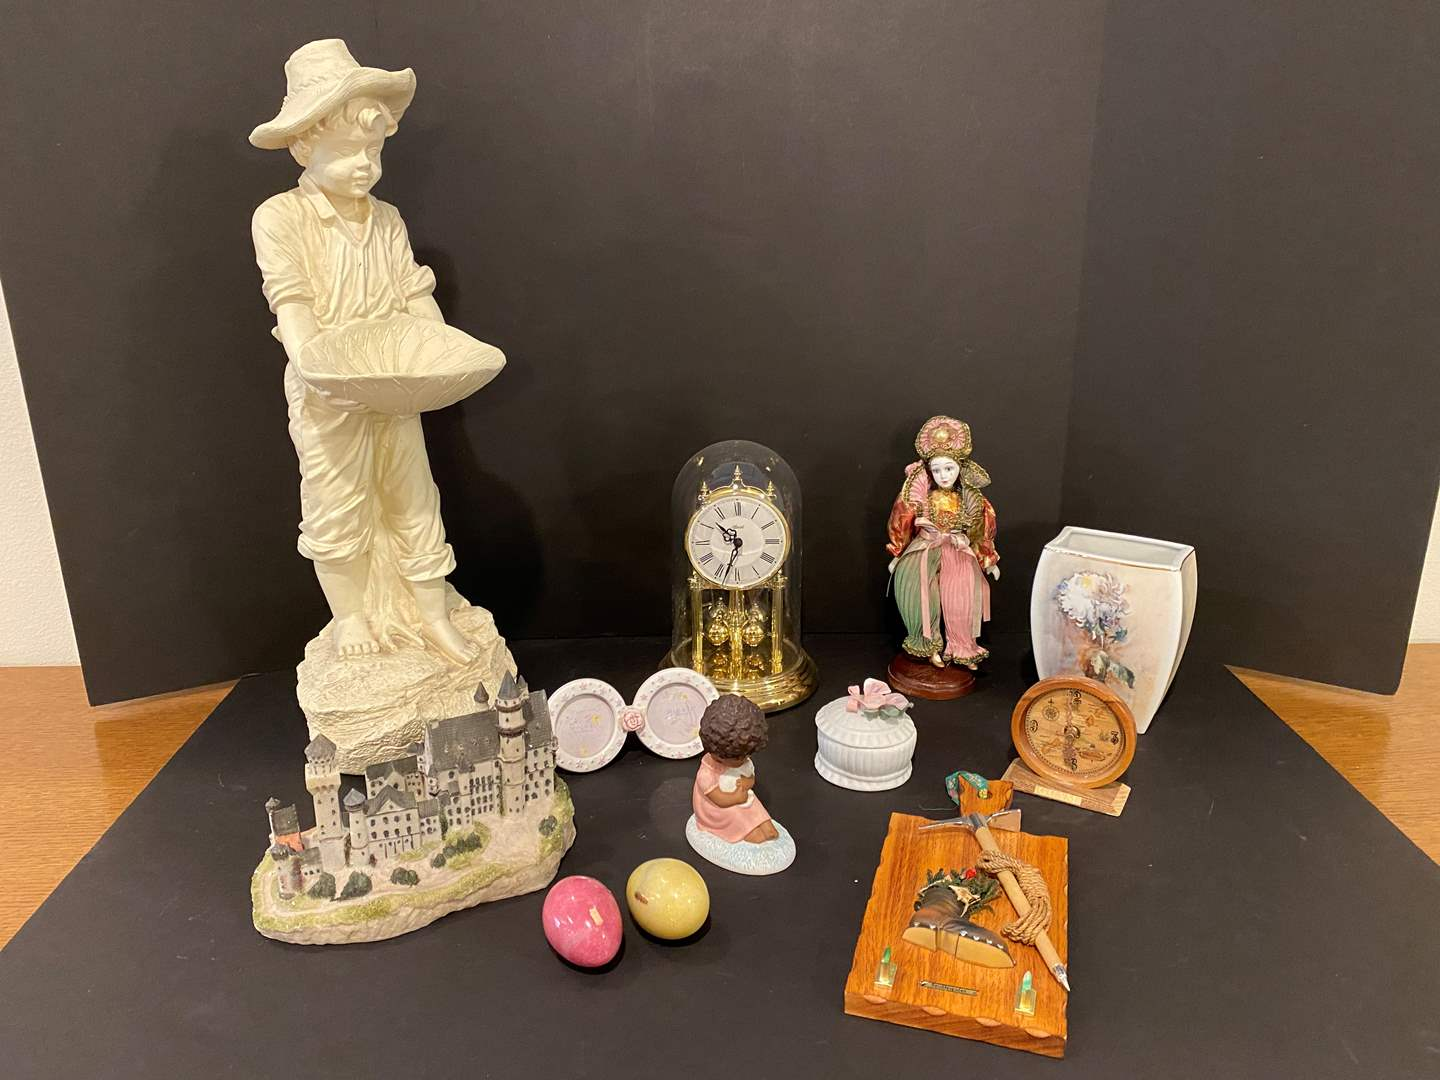 Lot # 175 - Hummel Vase, Goebel Figurines, Resin Statue, Plastic Anniversary Clock & More.. (main image)